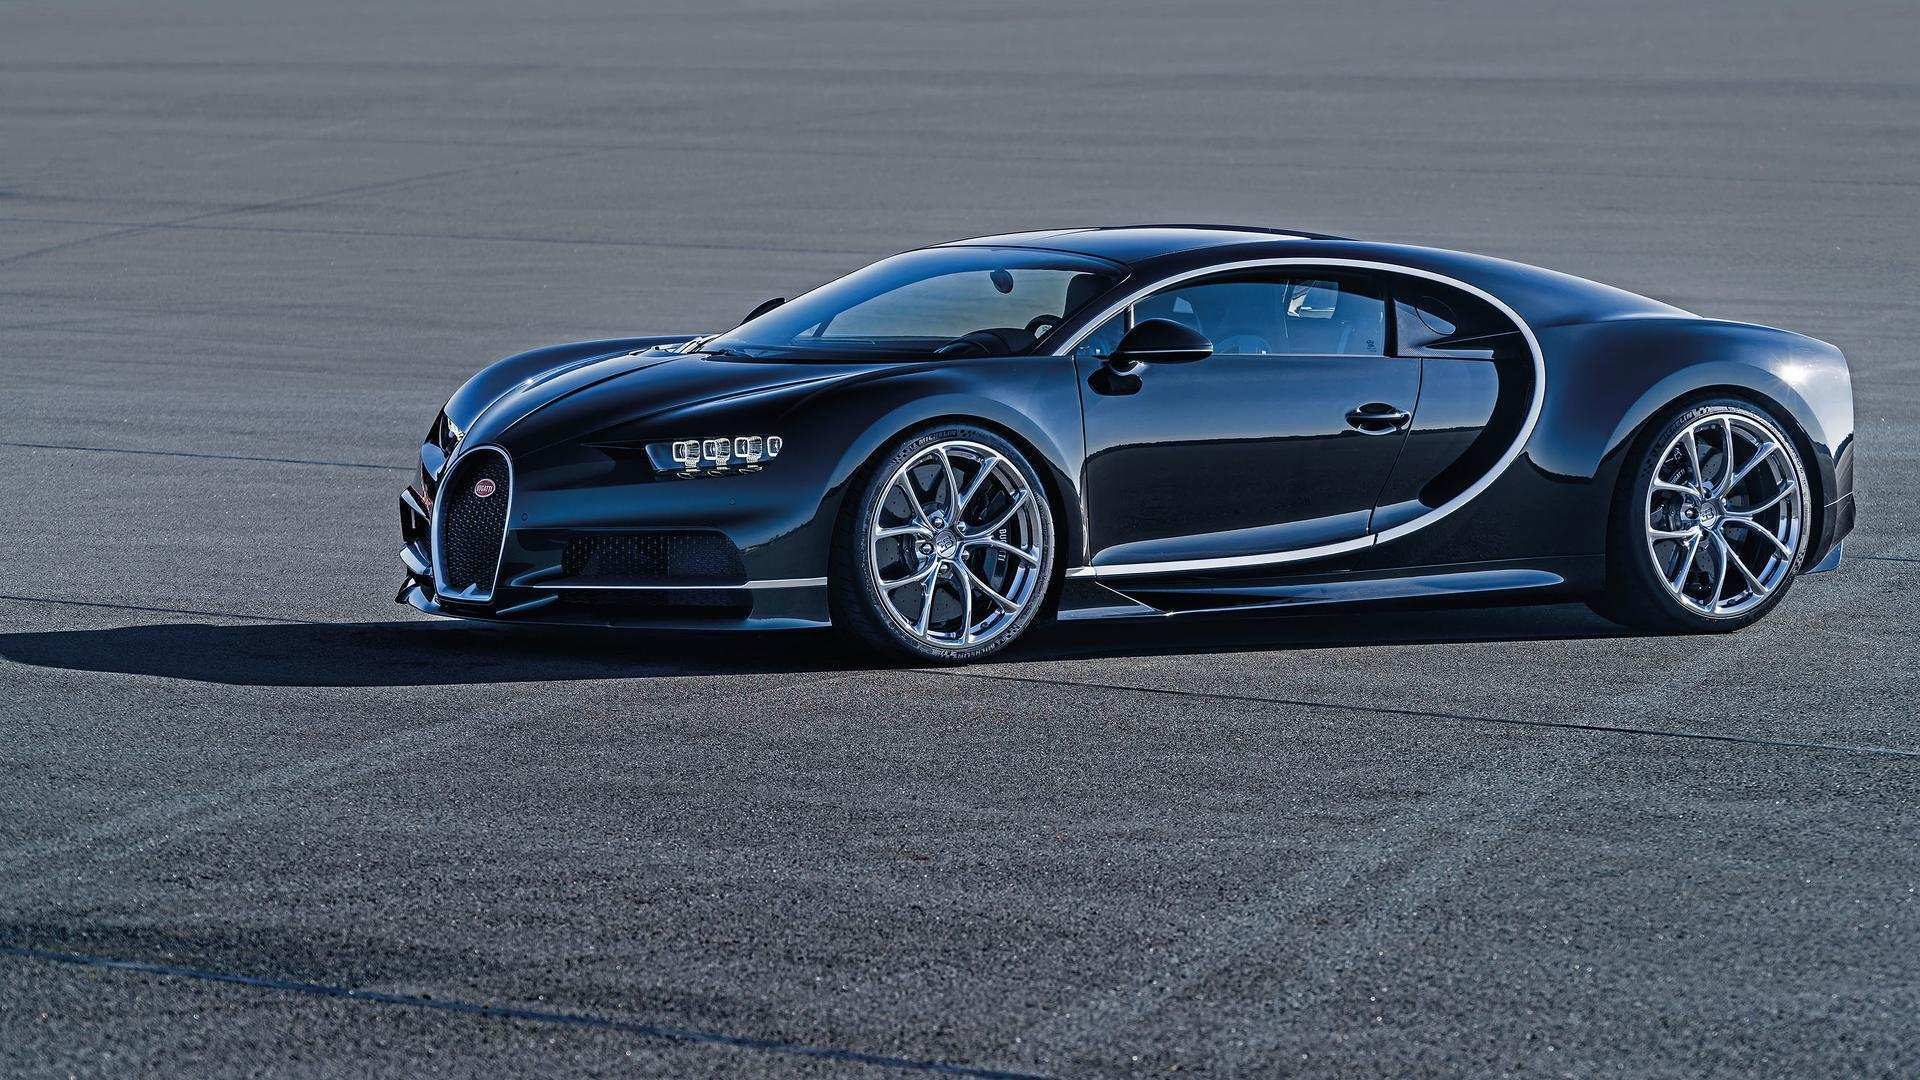 20 Great 2019 Bugatti Chiron Review for 2019 Bugatti Chiron